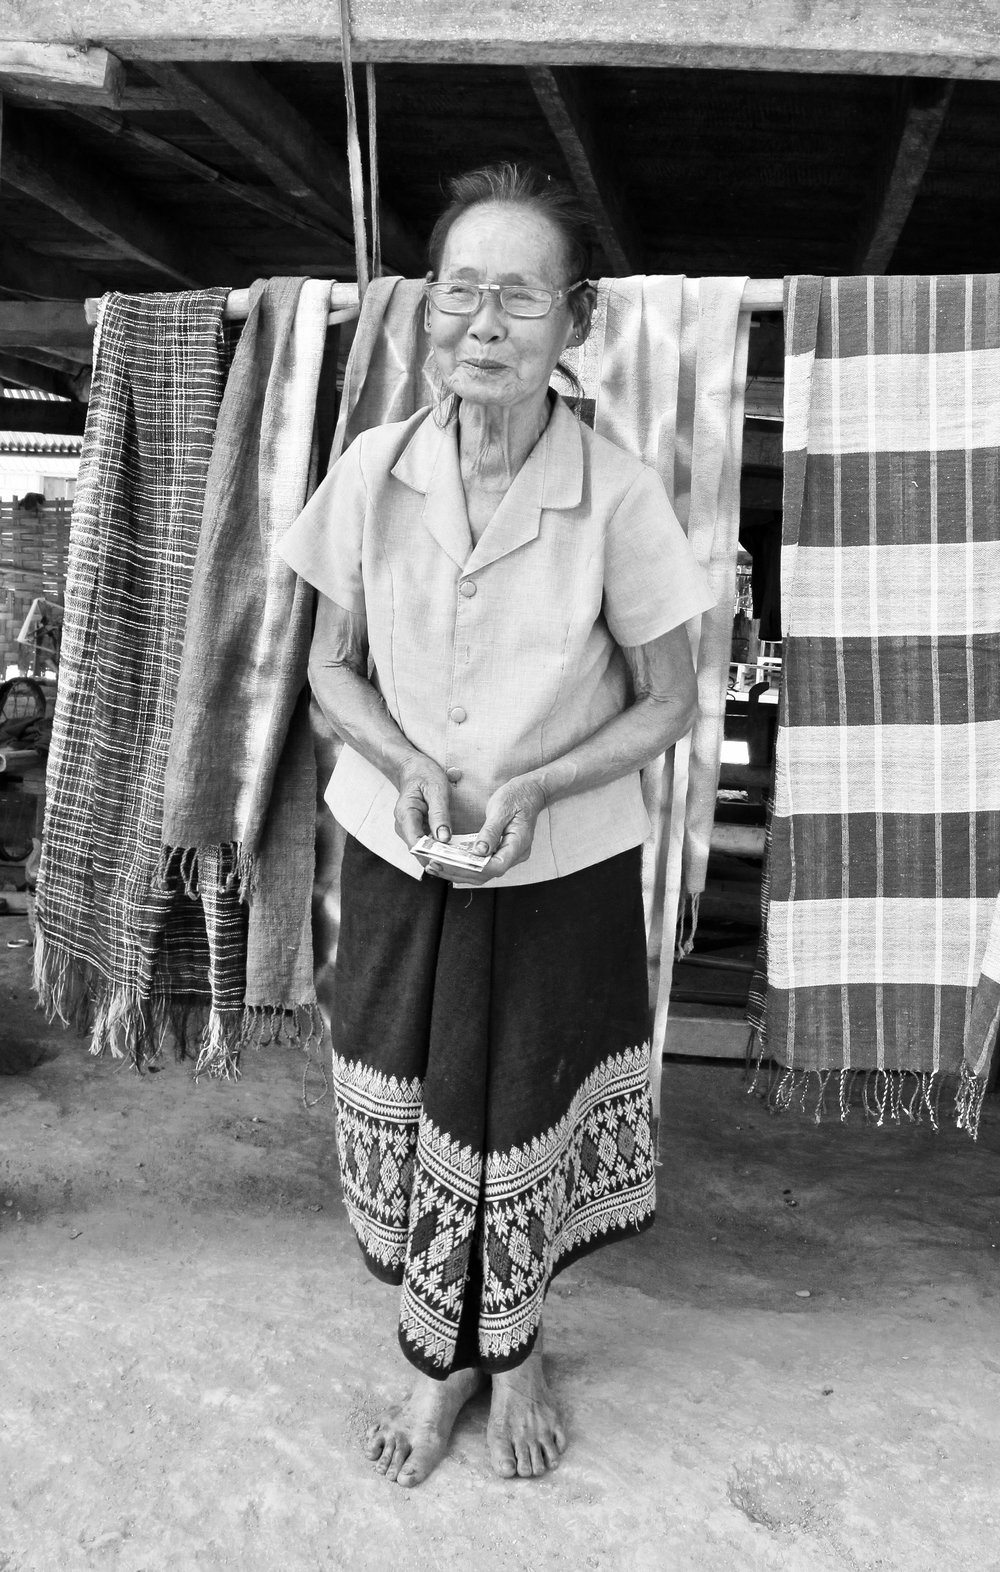 Savong in front her display of scarves. She's one of many weavers in Nayang Tai, a weaving village in northern Laos, who learned from an early age how to spin and weave.